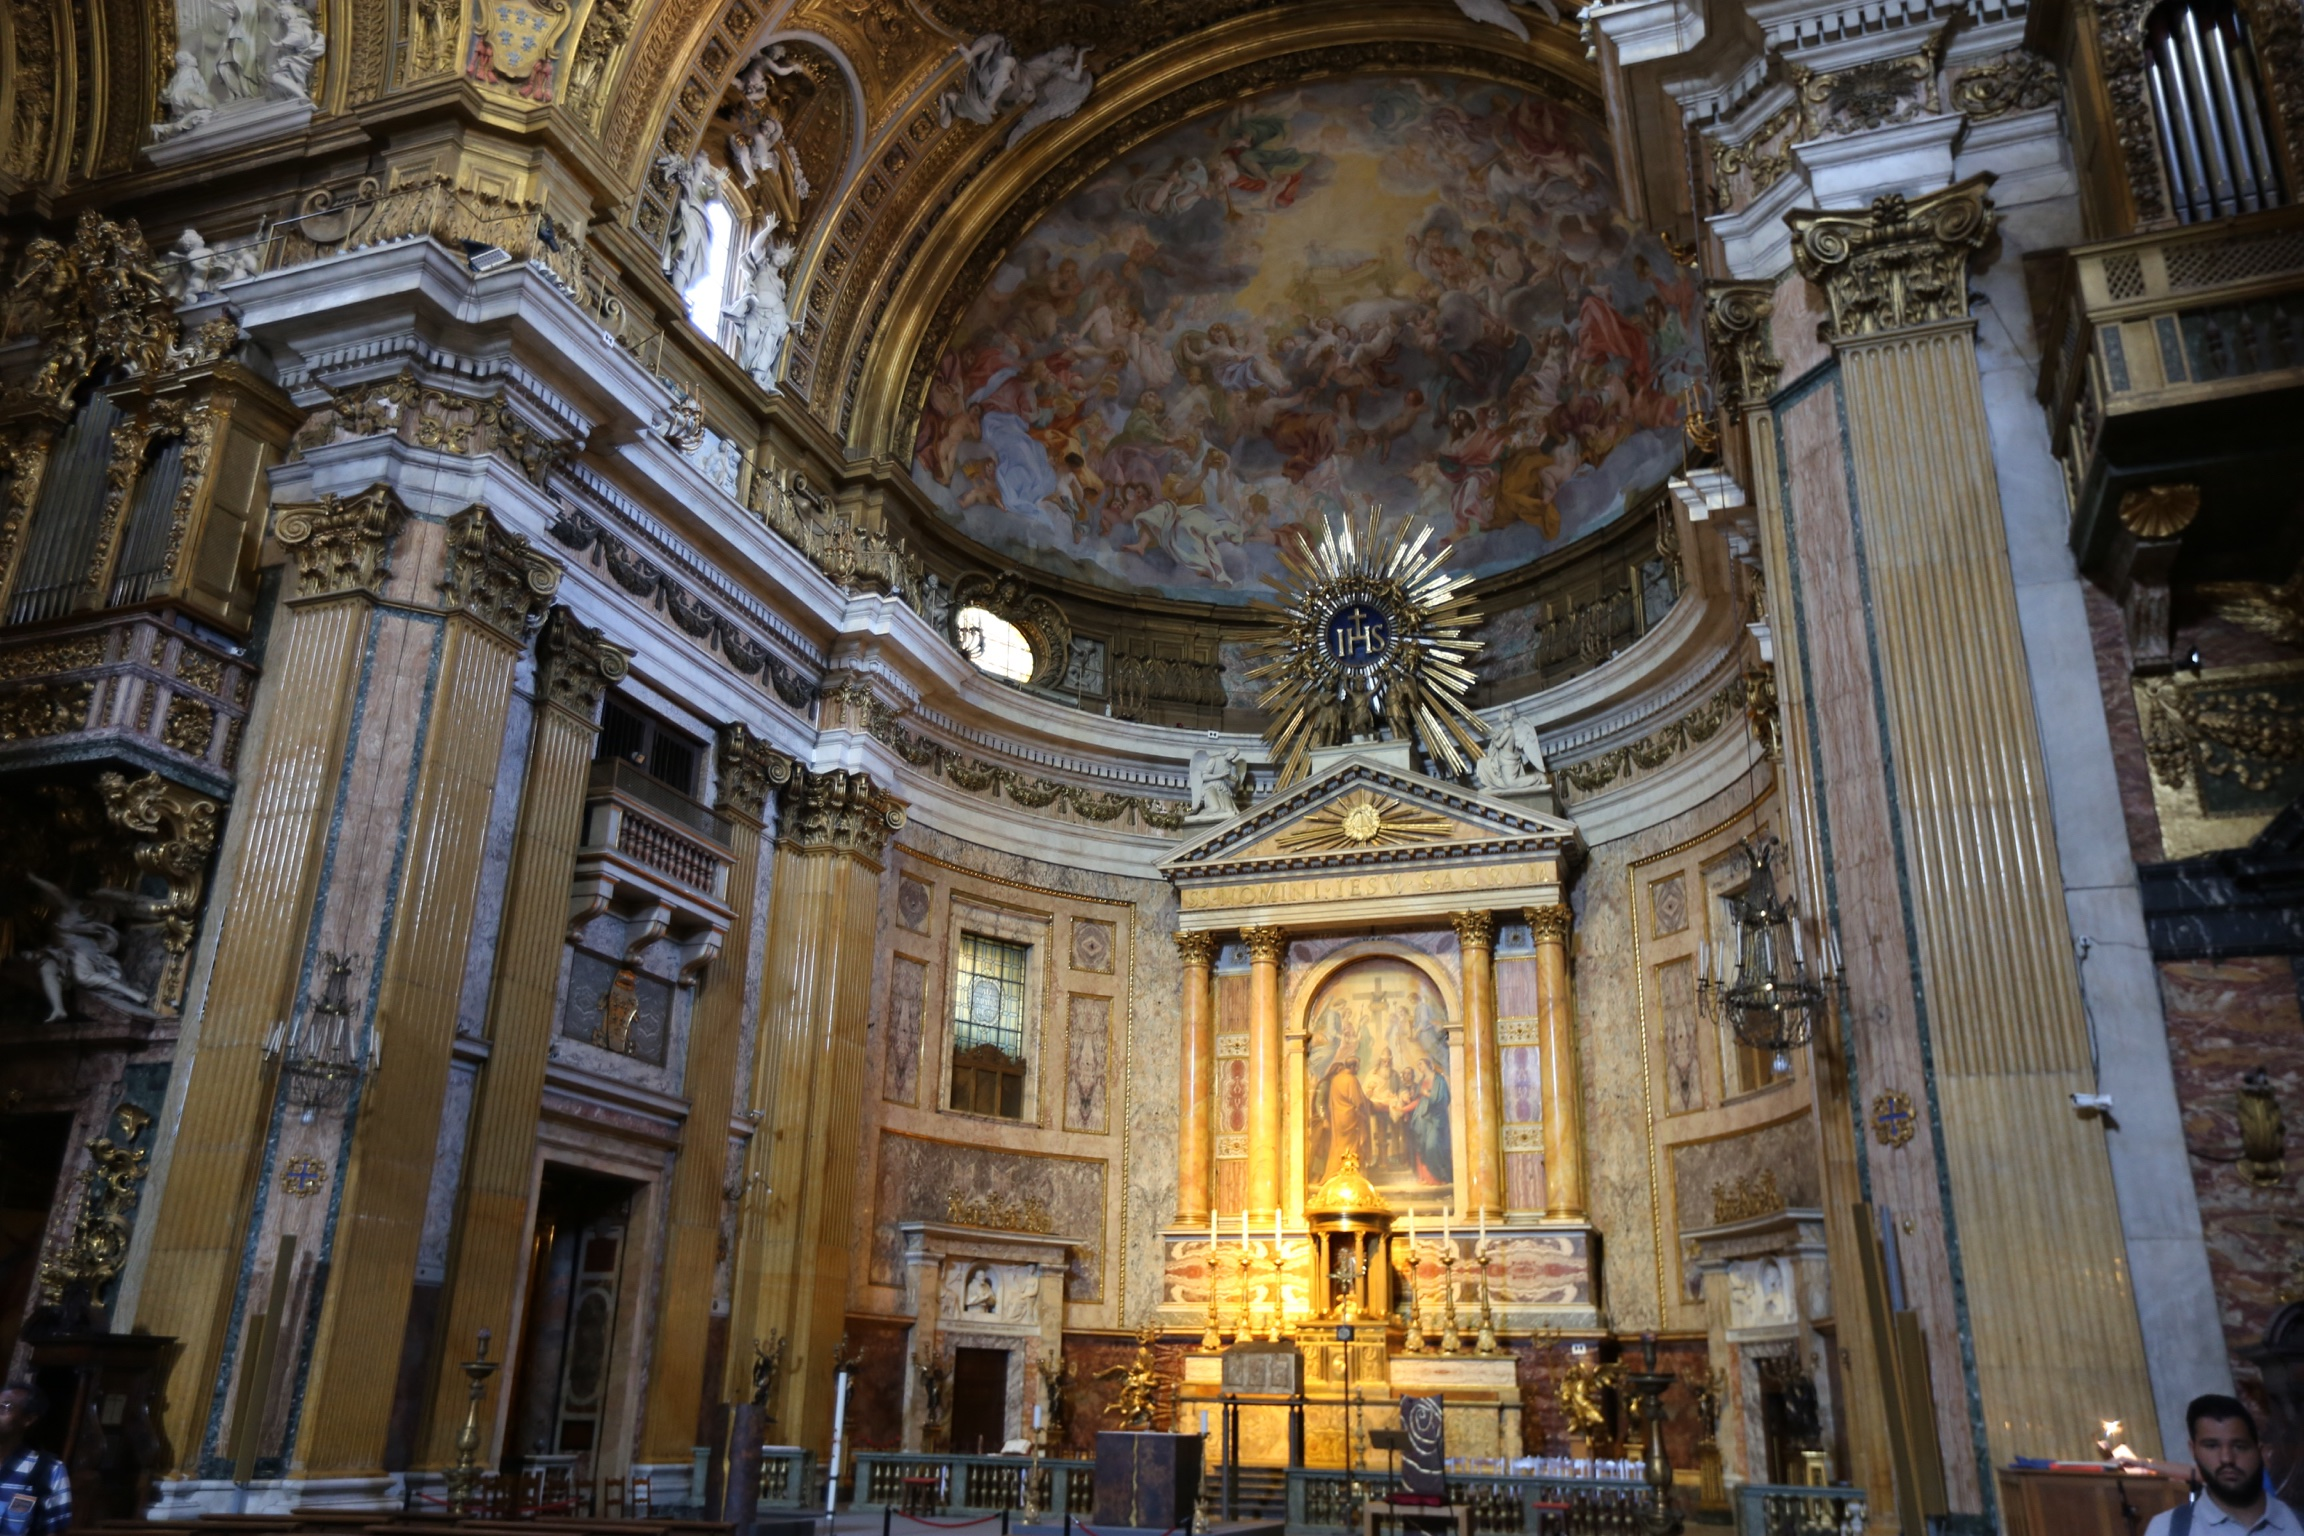 it's hard to show or explain how enormous and ornate the basilica truly is.